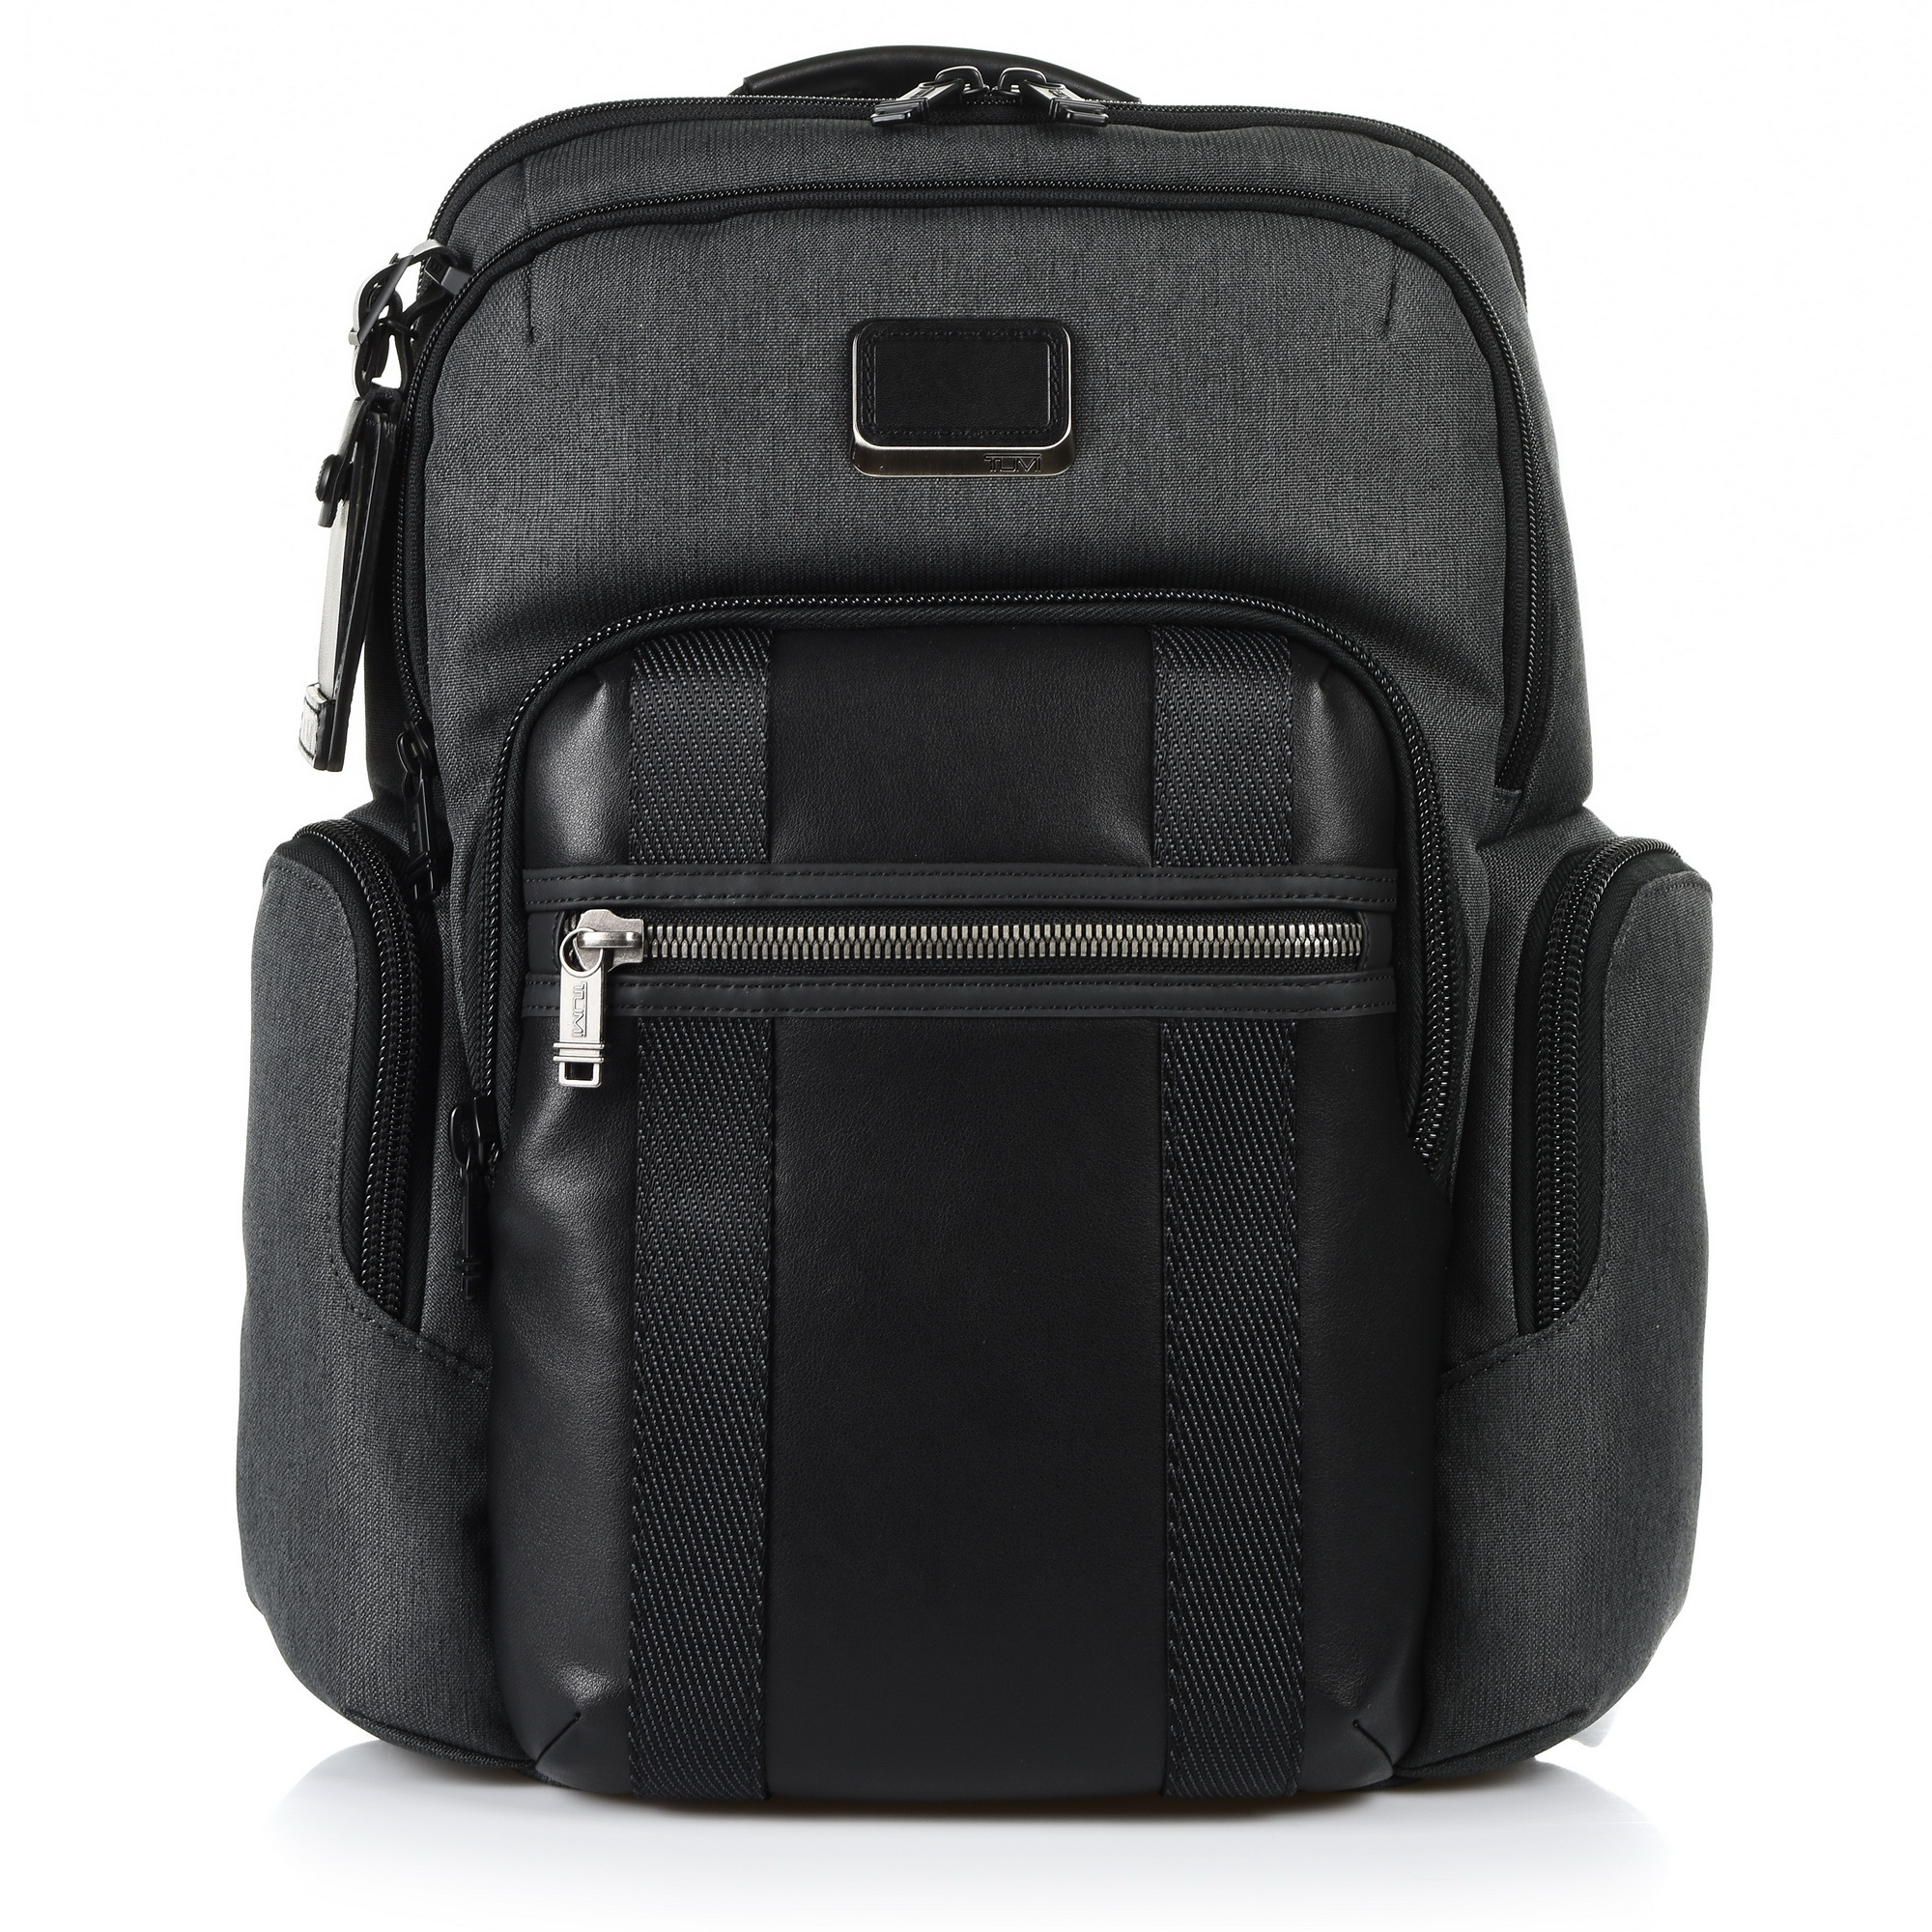 567cfa8fd4 Σακίδιο Πλάτης Tumi ALPHA BRAVO Nellis Backpack 103304